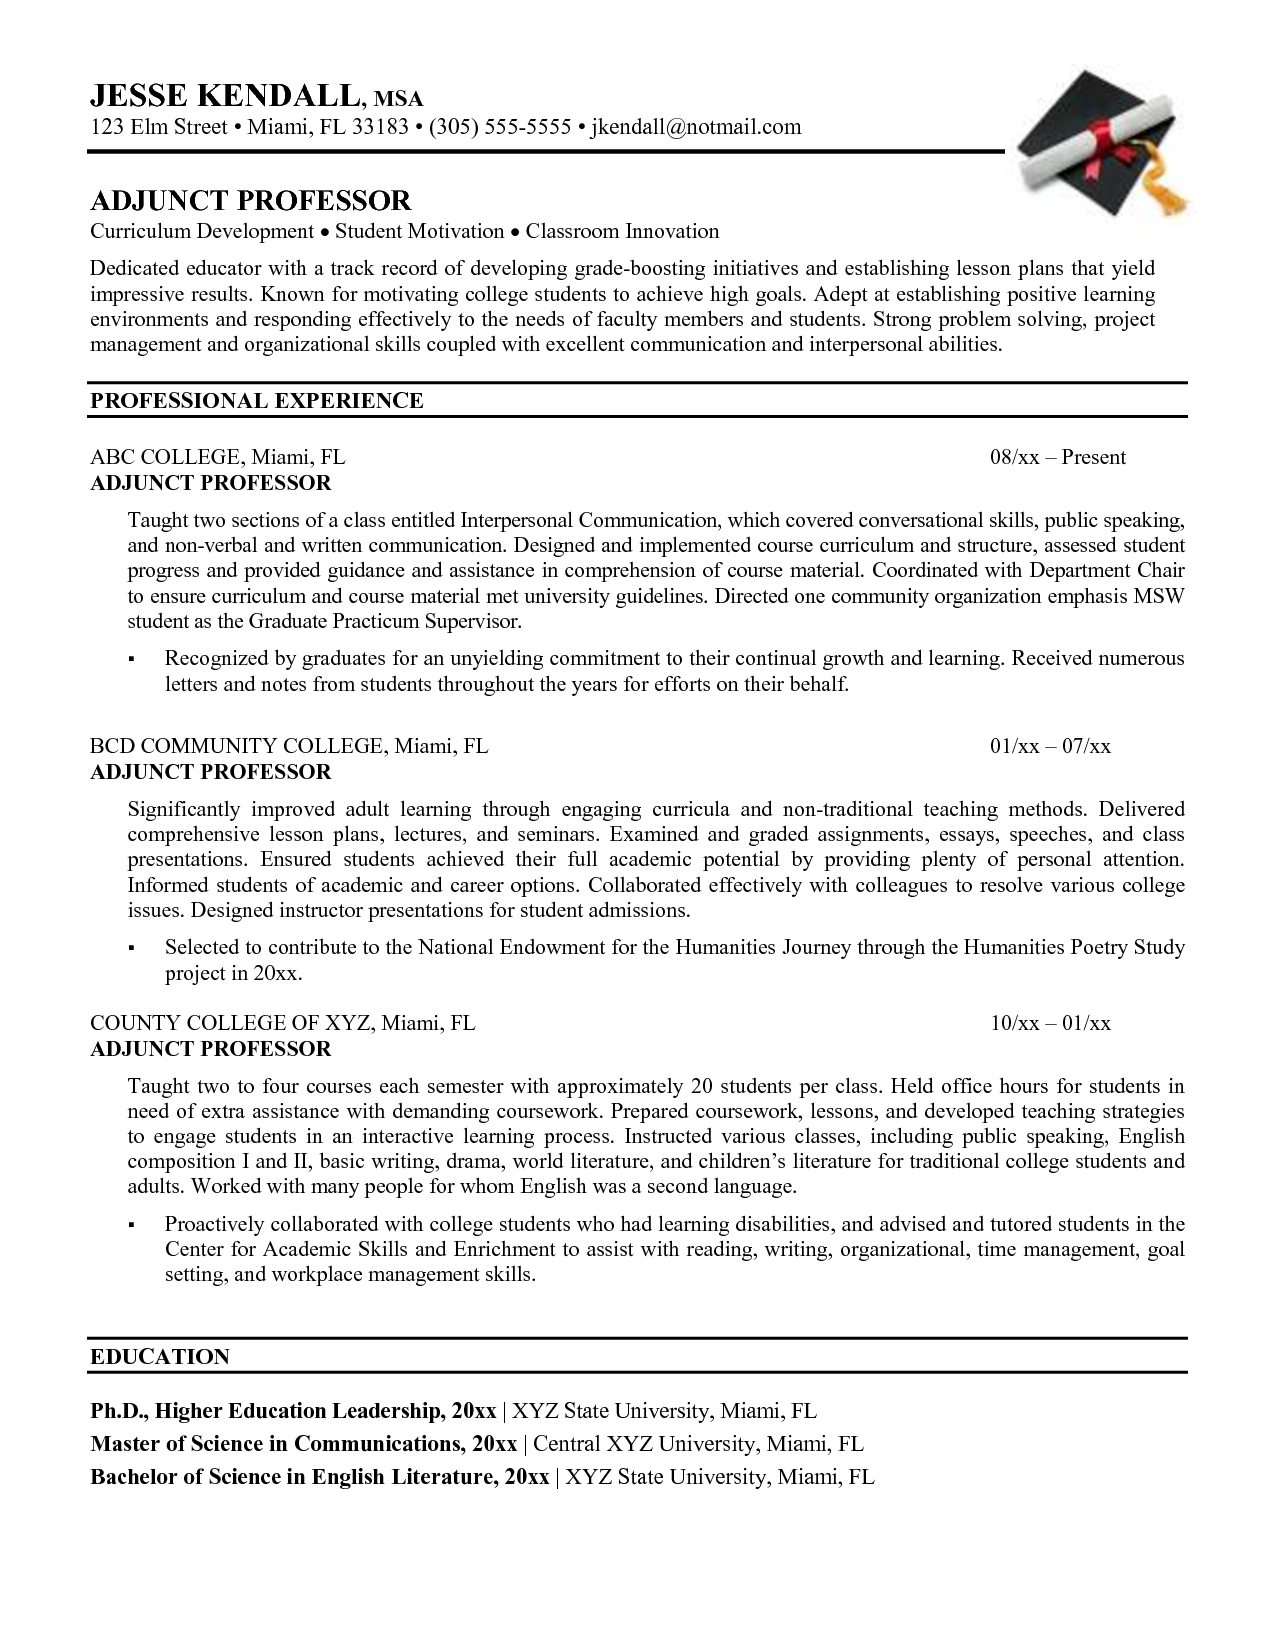 Resume Cv Template Sample Resume For Faculty Position Engineering Adjunct Professor